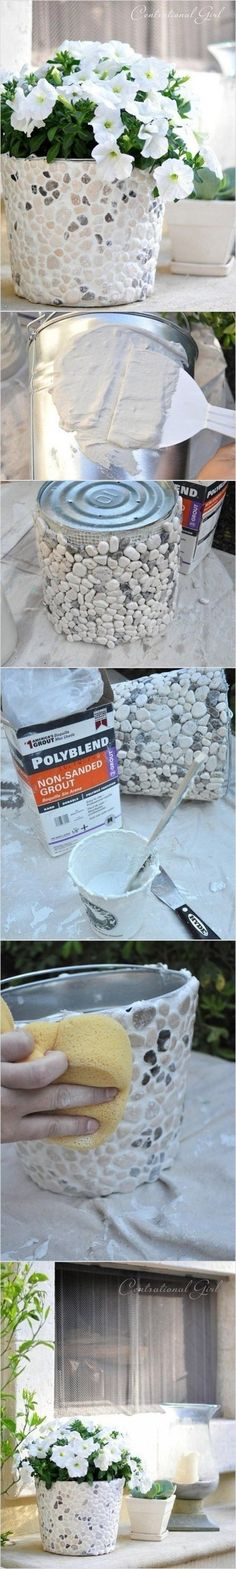 DIY Stone Pots from paint buckets DIY Macetero decorado con piedras Diy Projects To Try, Craft Projects, Garden Projects, Mosaic Projects, Fun Crafts, Diy And Crafts, Creative Crafts, Creation Deco, Ideias Diy